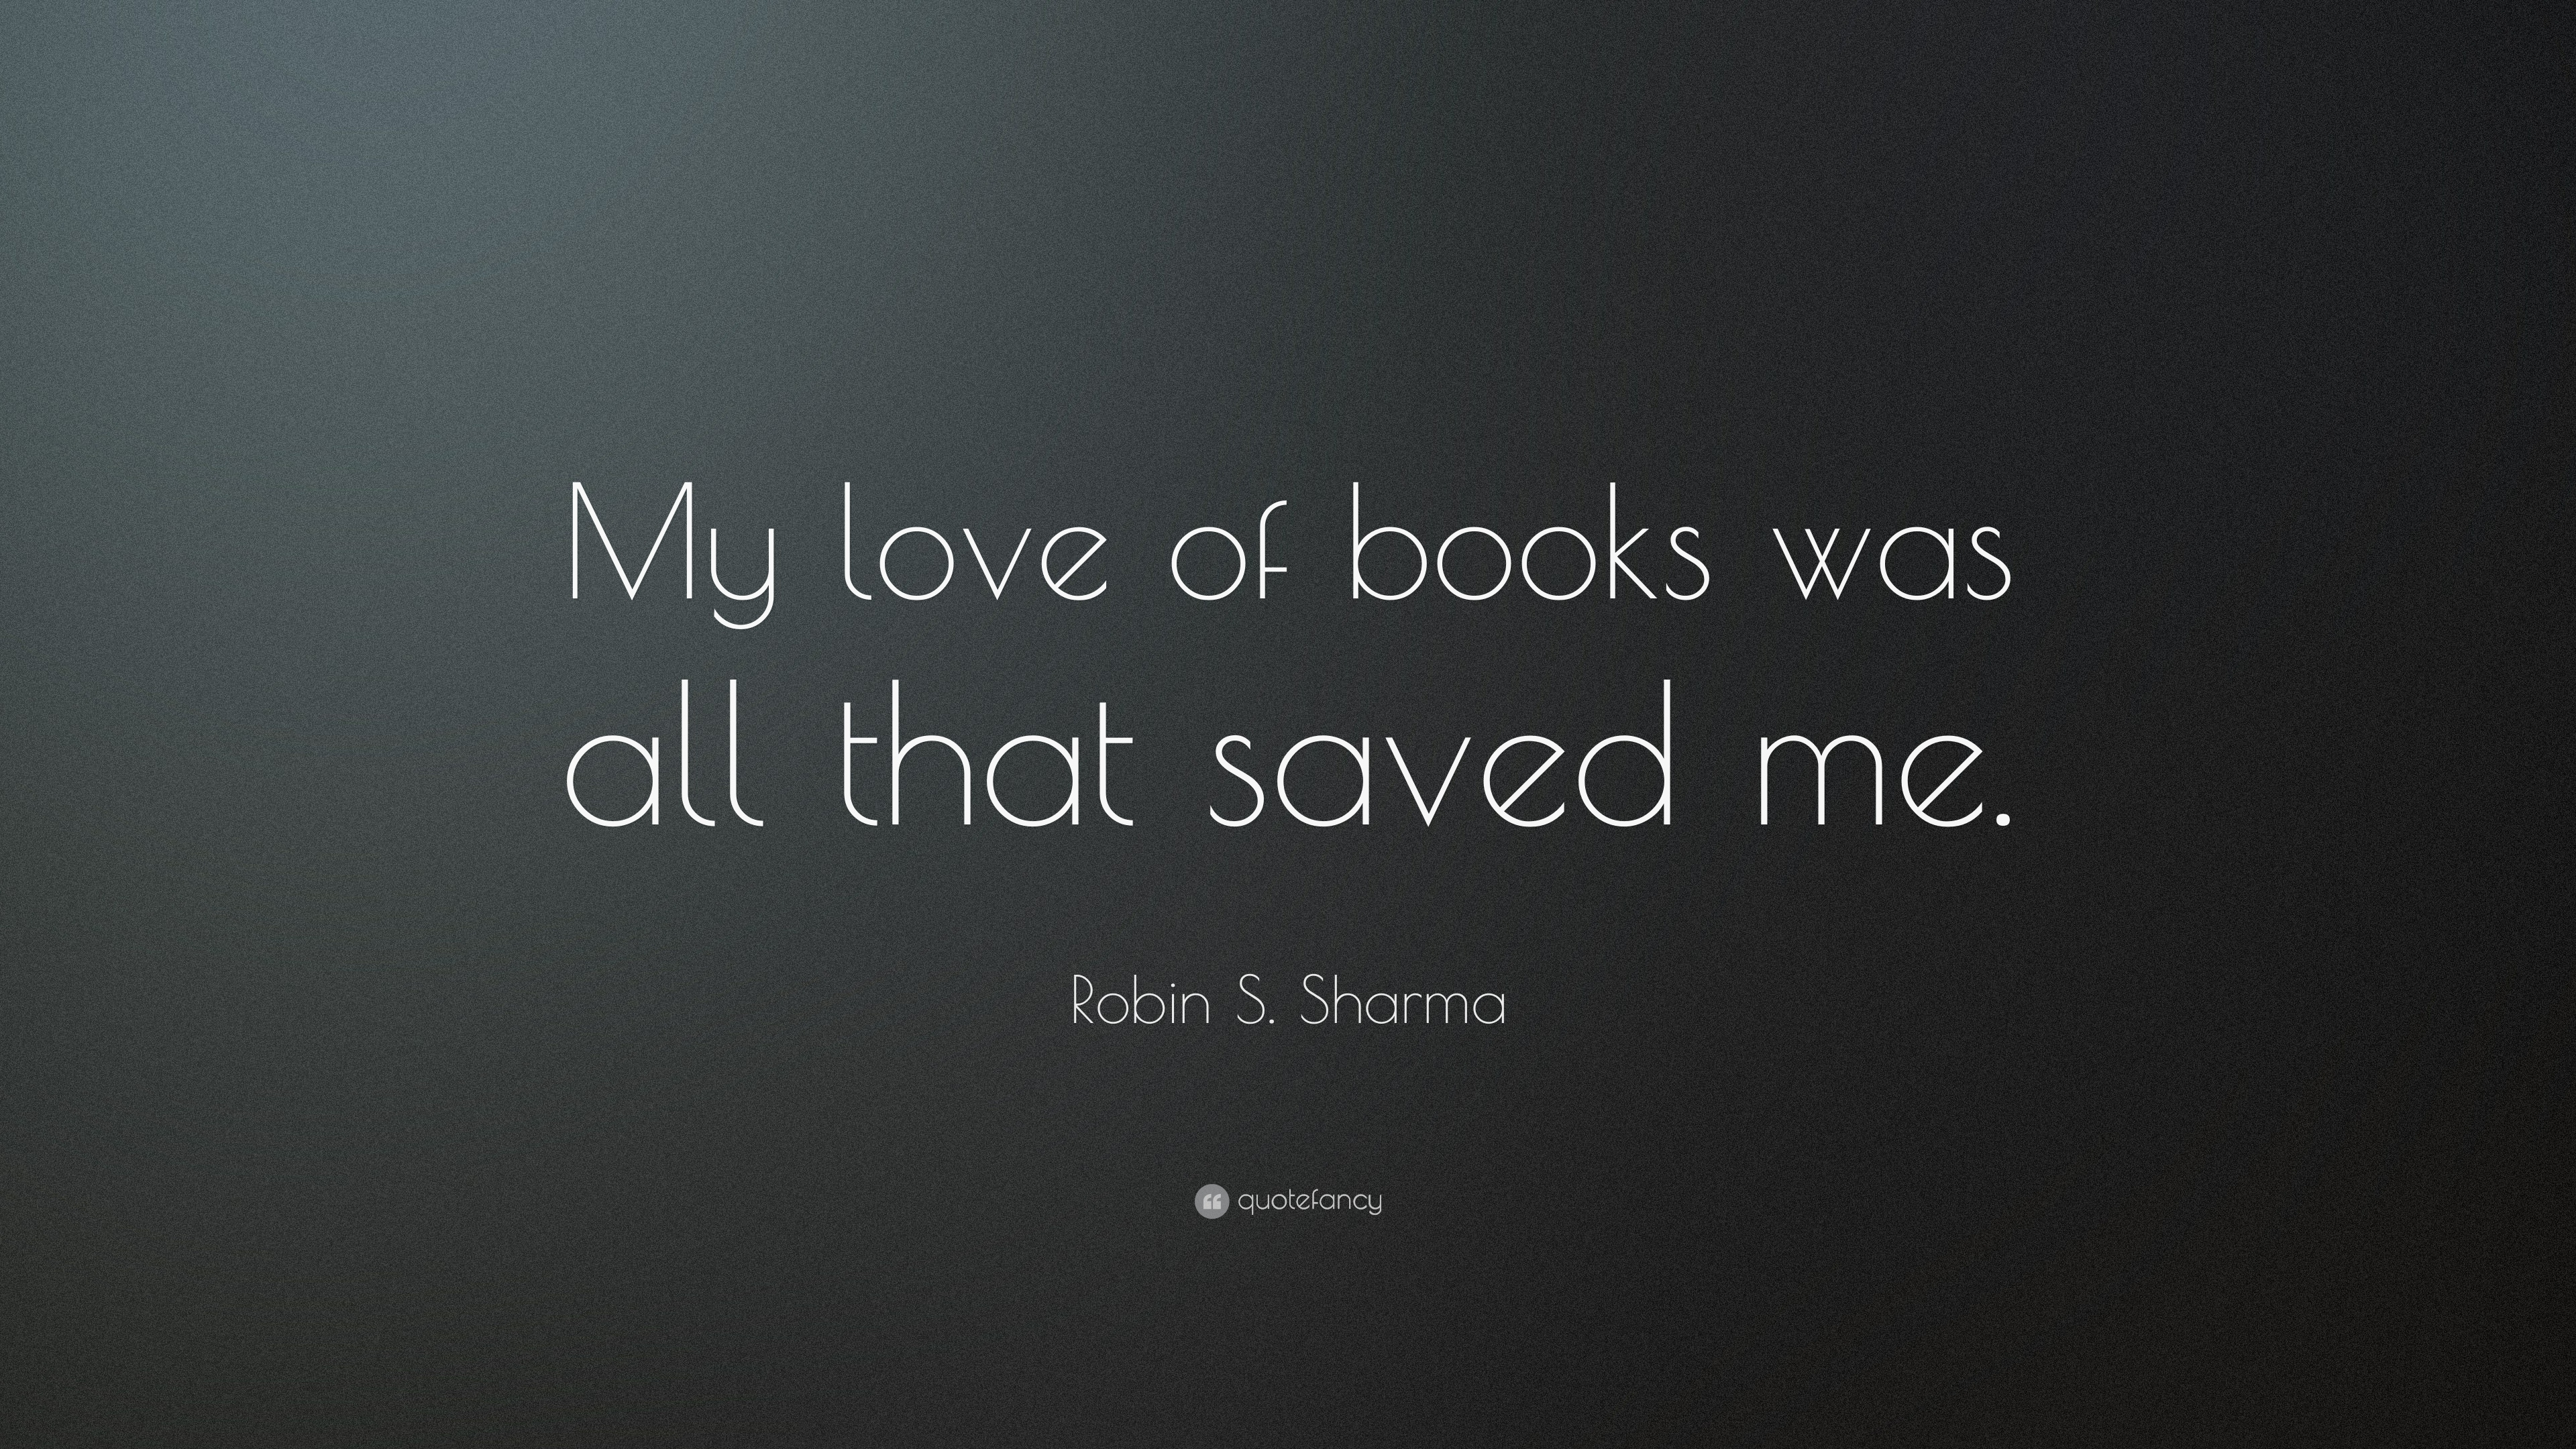 Robin S Sharma Quote My Love Of Books Was All That Saved Me 12